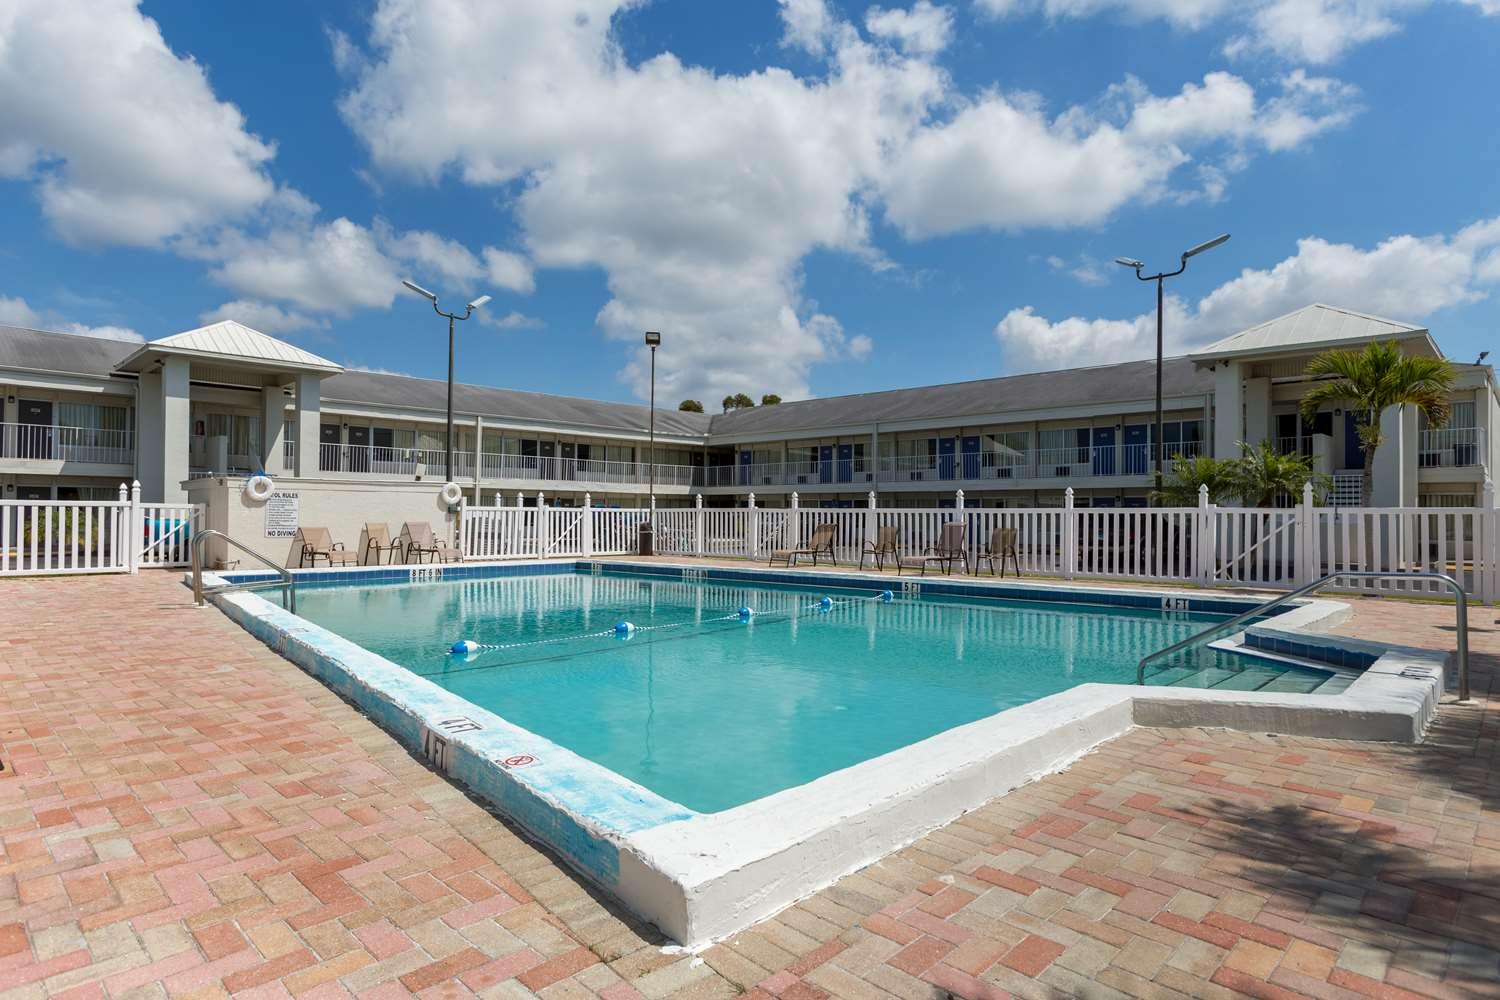 Studio 6 Extended Stay Hotel Englewood, FL - See Discounts